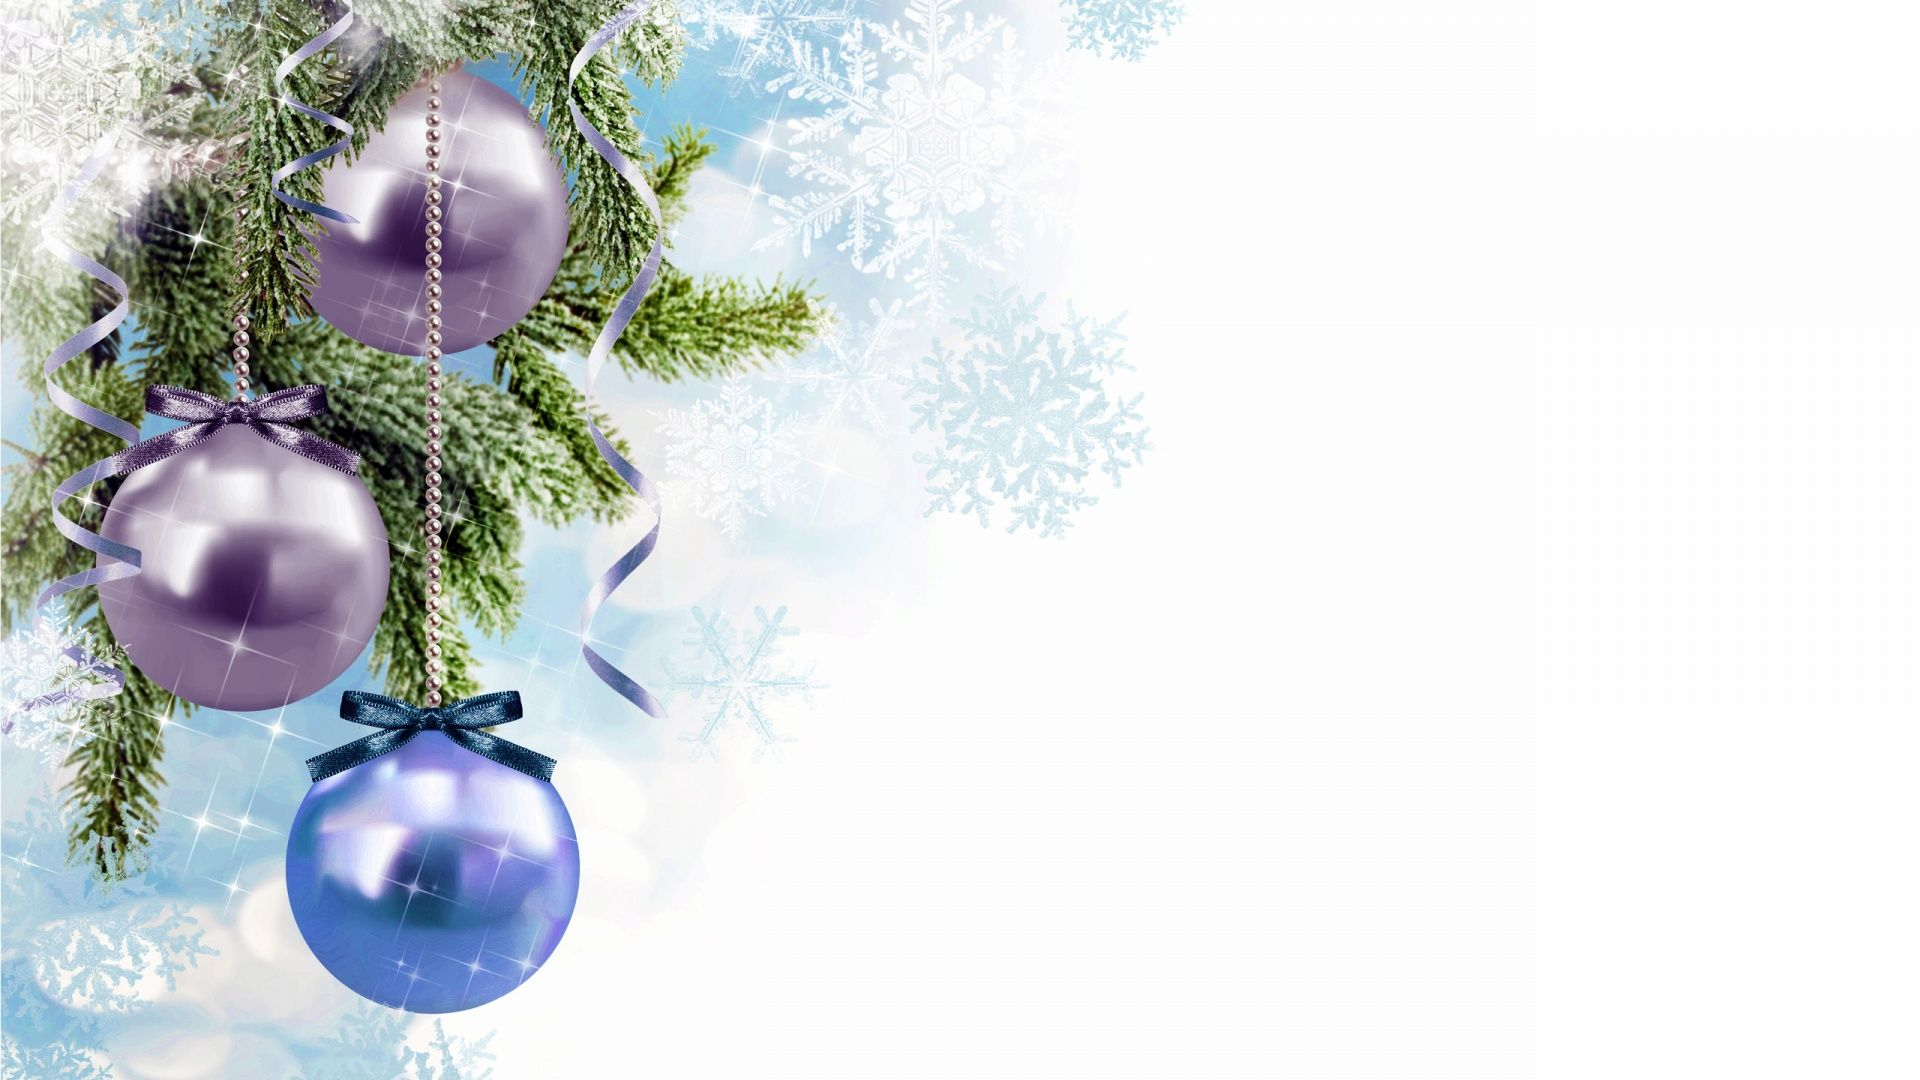 Iphone 4s Galaxy Wallpaper Christmas Bauble Decorations Hd Wallpaper Hd Latest